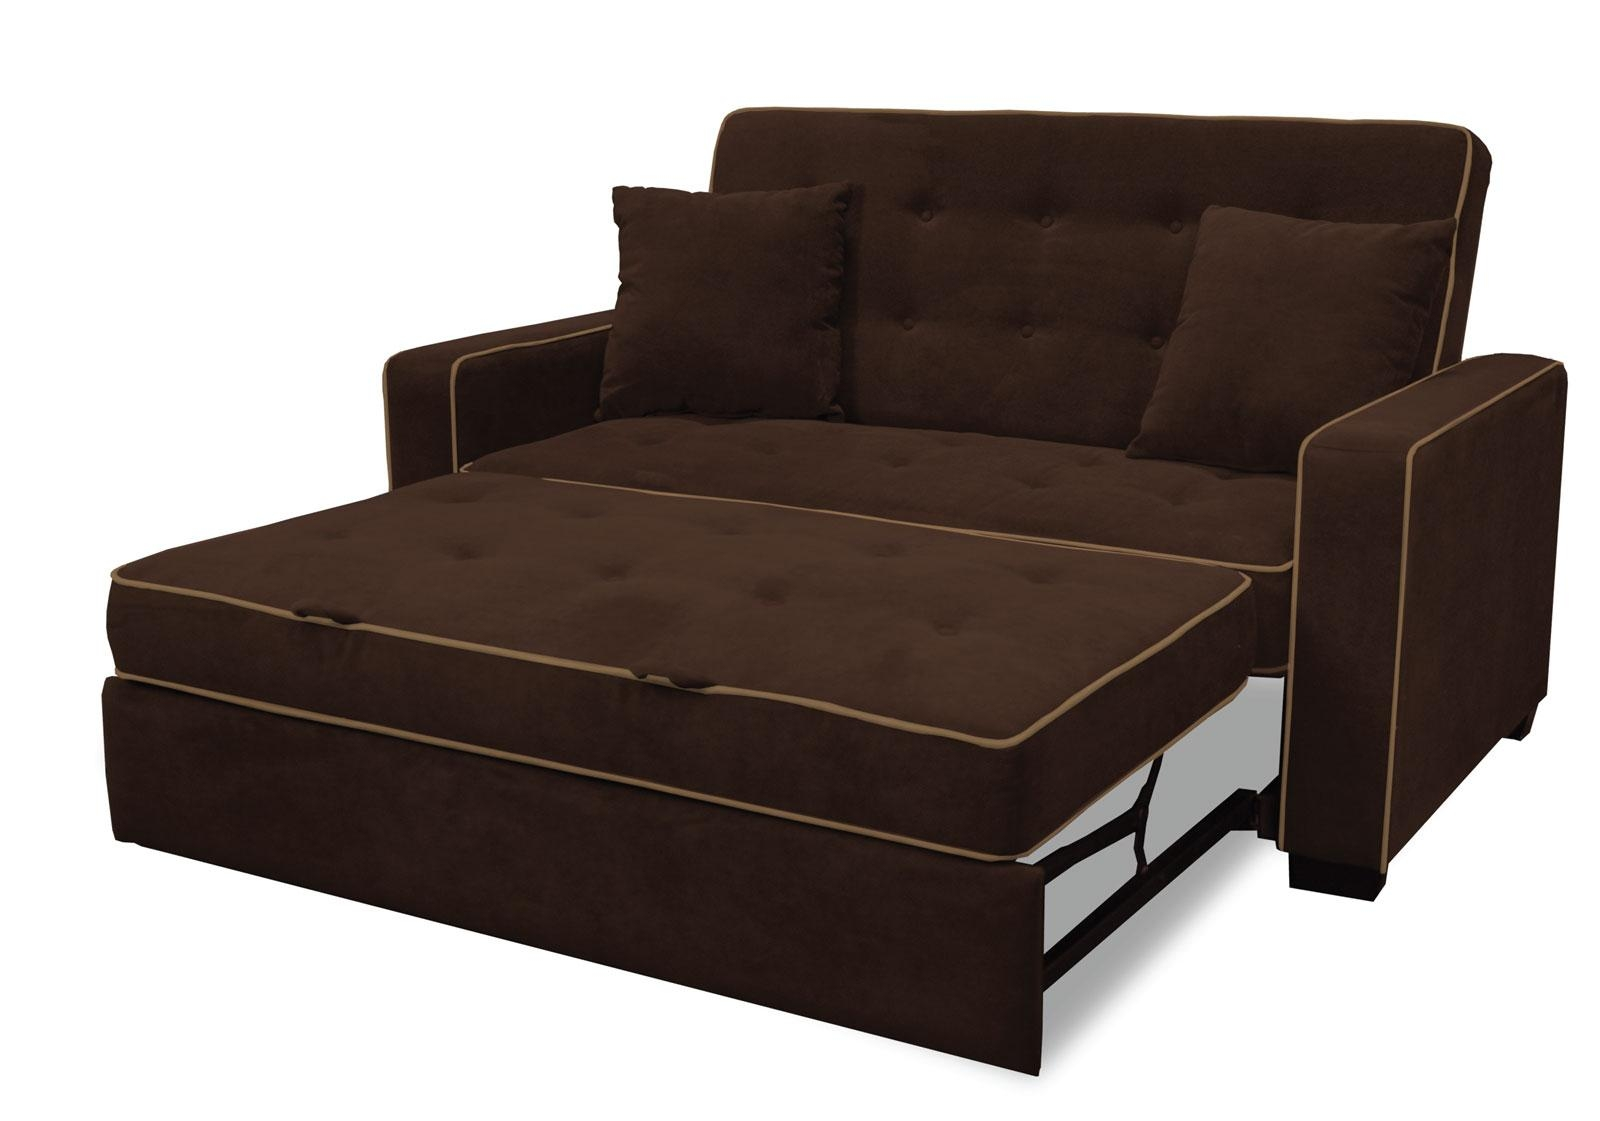 Sofas: Sleeper Sofas Ikea | Sleeper Sofa Ikea | Loveseat Sleeper With Regard To Comfortable Convertible Sofas (View 17 of 20)